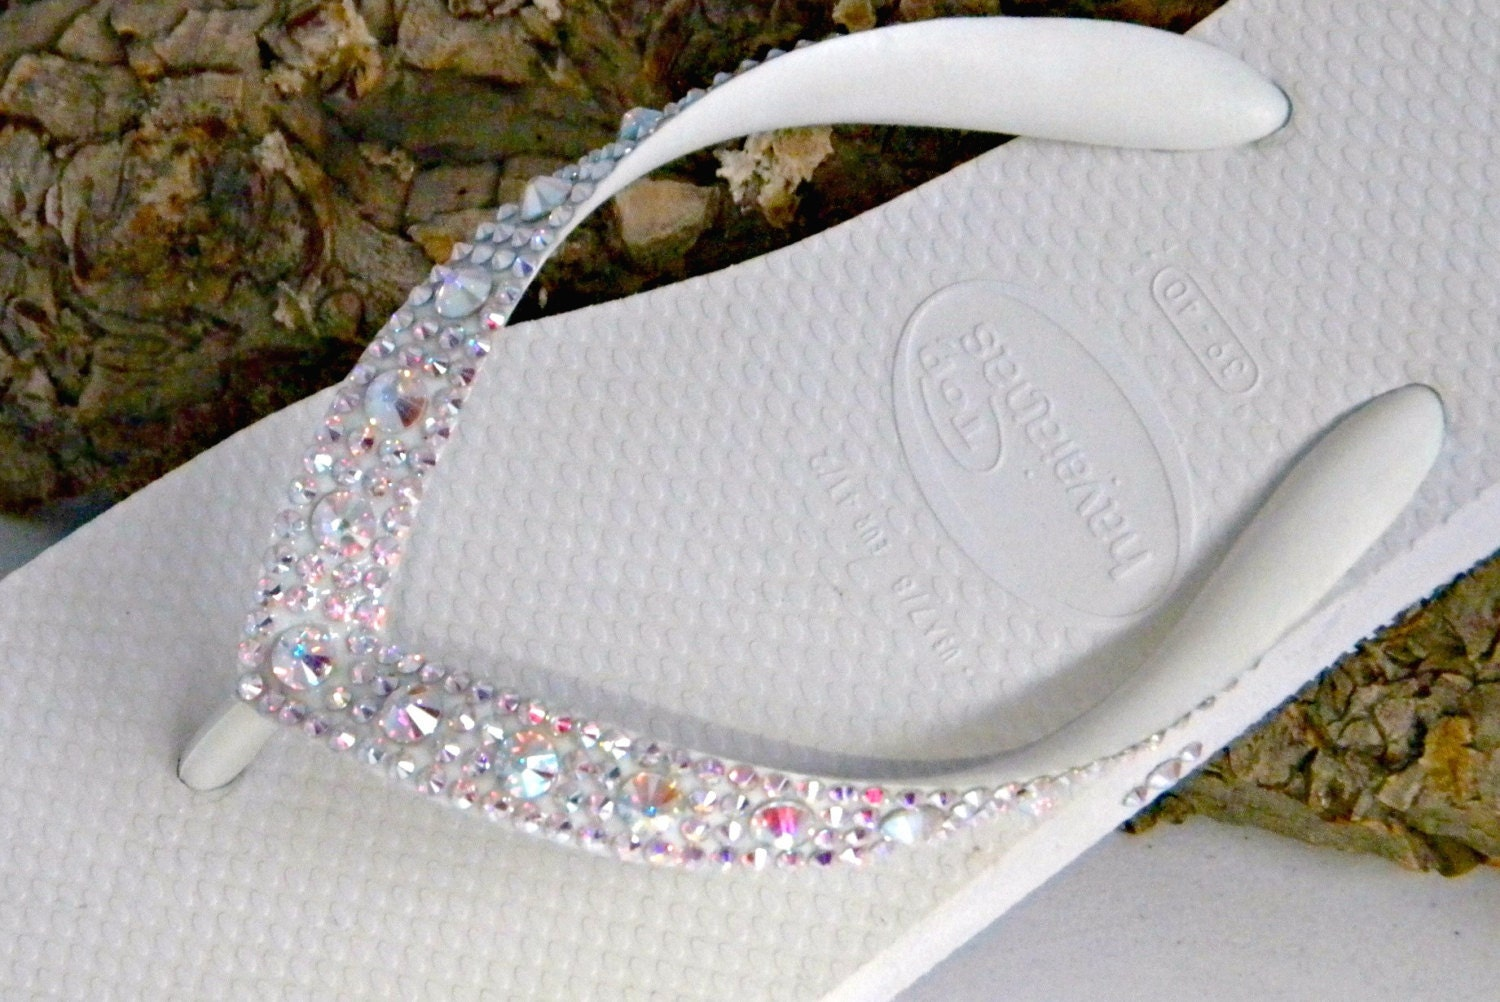 b16e98360 Wedding Flip Flops Custom Havaianas Glass Slippers w  Swarovski Crystal AB  gemstones Beach Bridal Full Moon Iridescent Low Wedge Bling Shoes